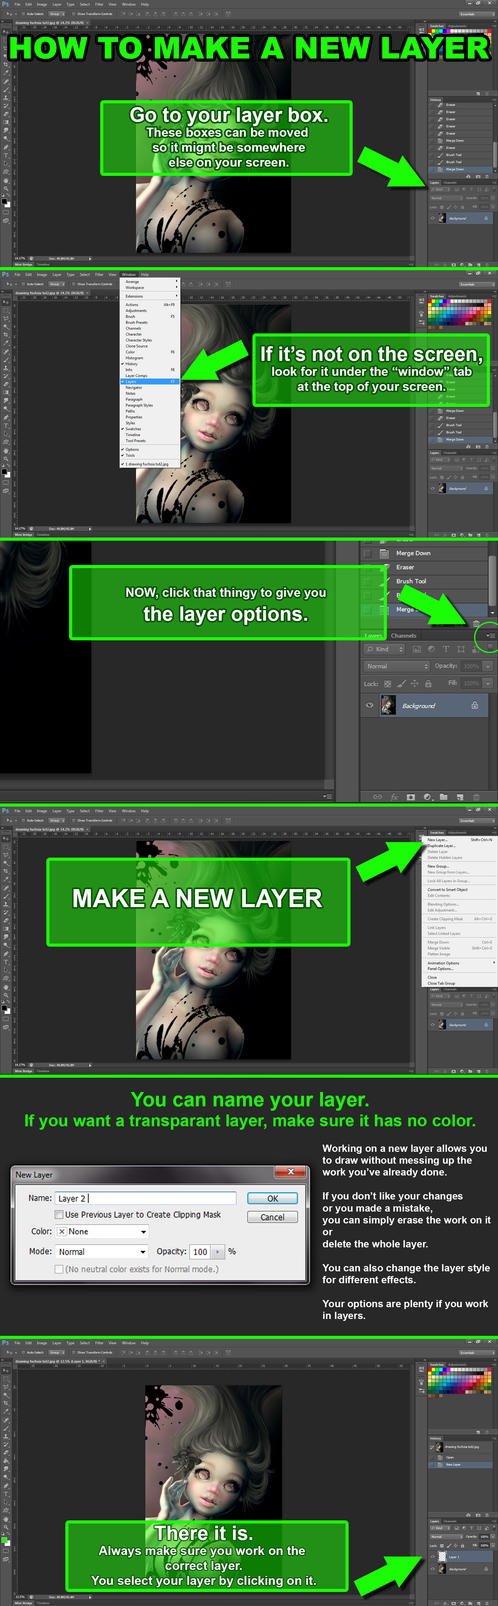 How to make a new layer by dreamarian